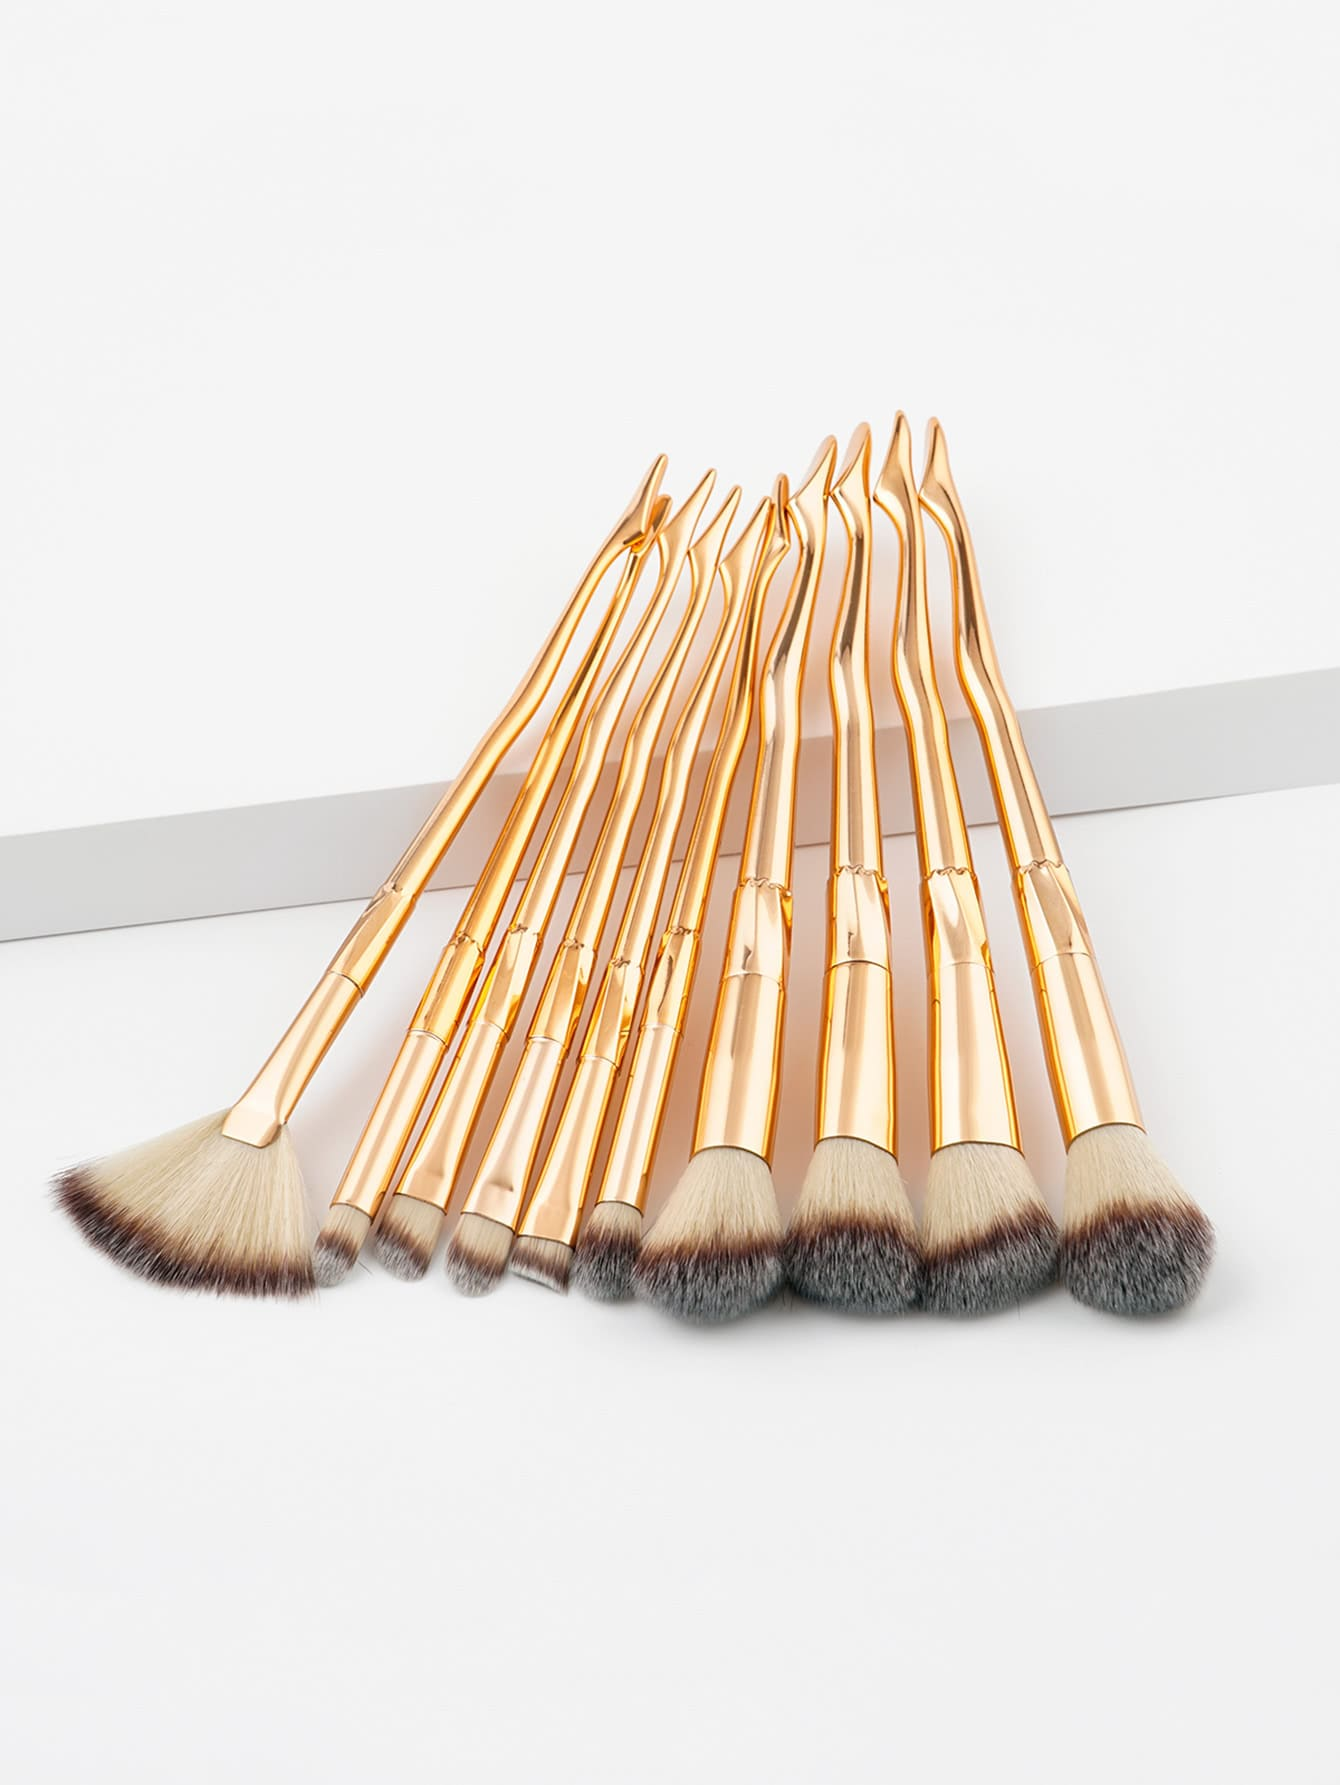 Metallic Handle Makeup Brush 10pcs